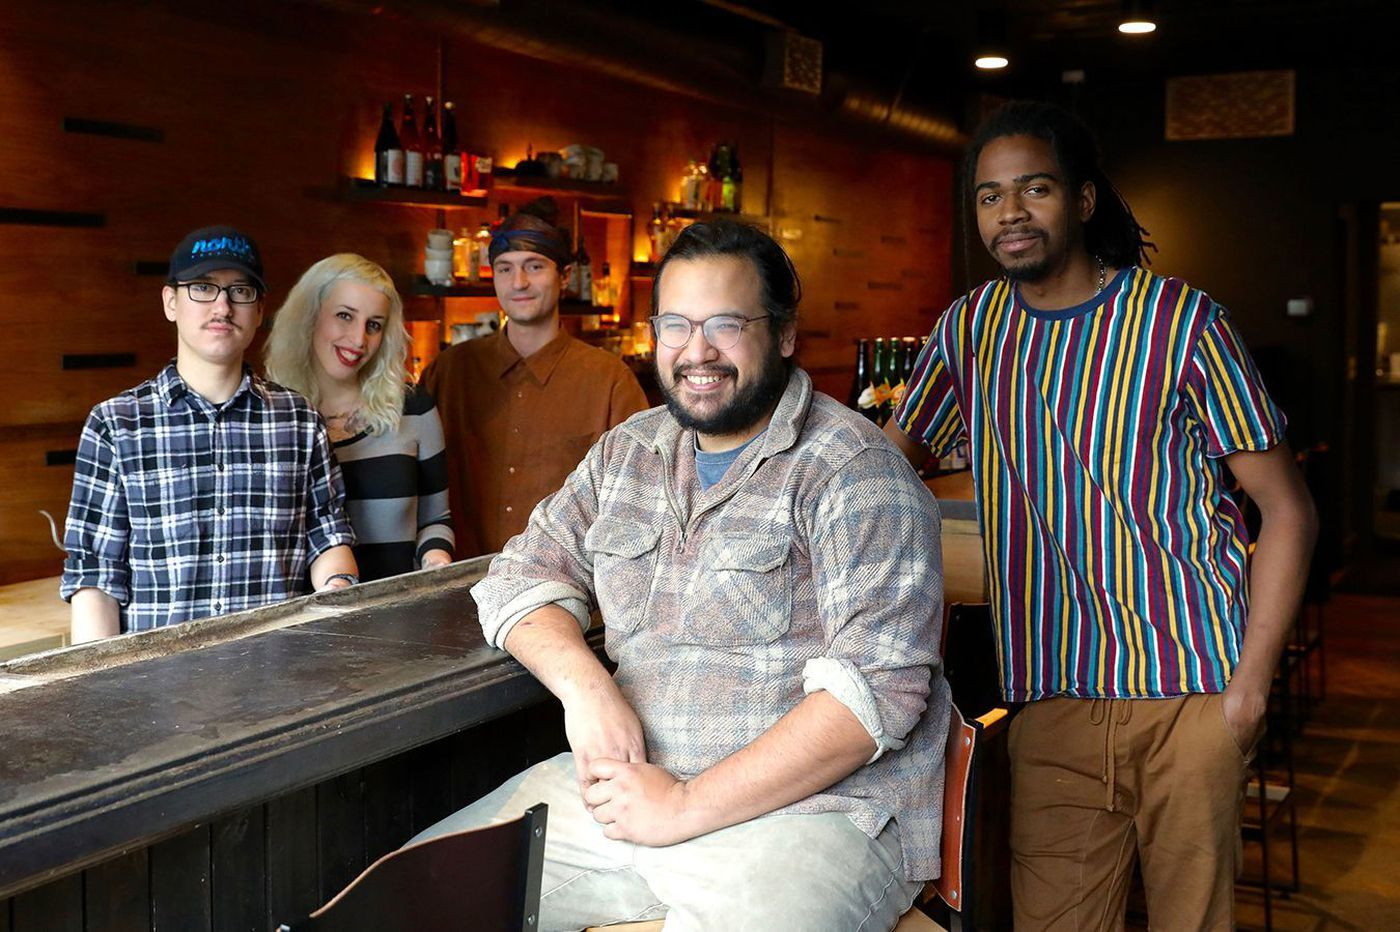 Single-payer health insurance may be just what these restaurateurs ordered